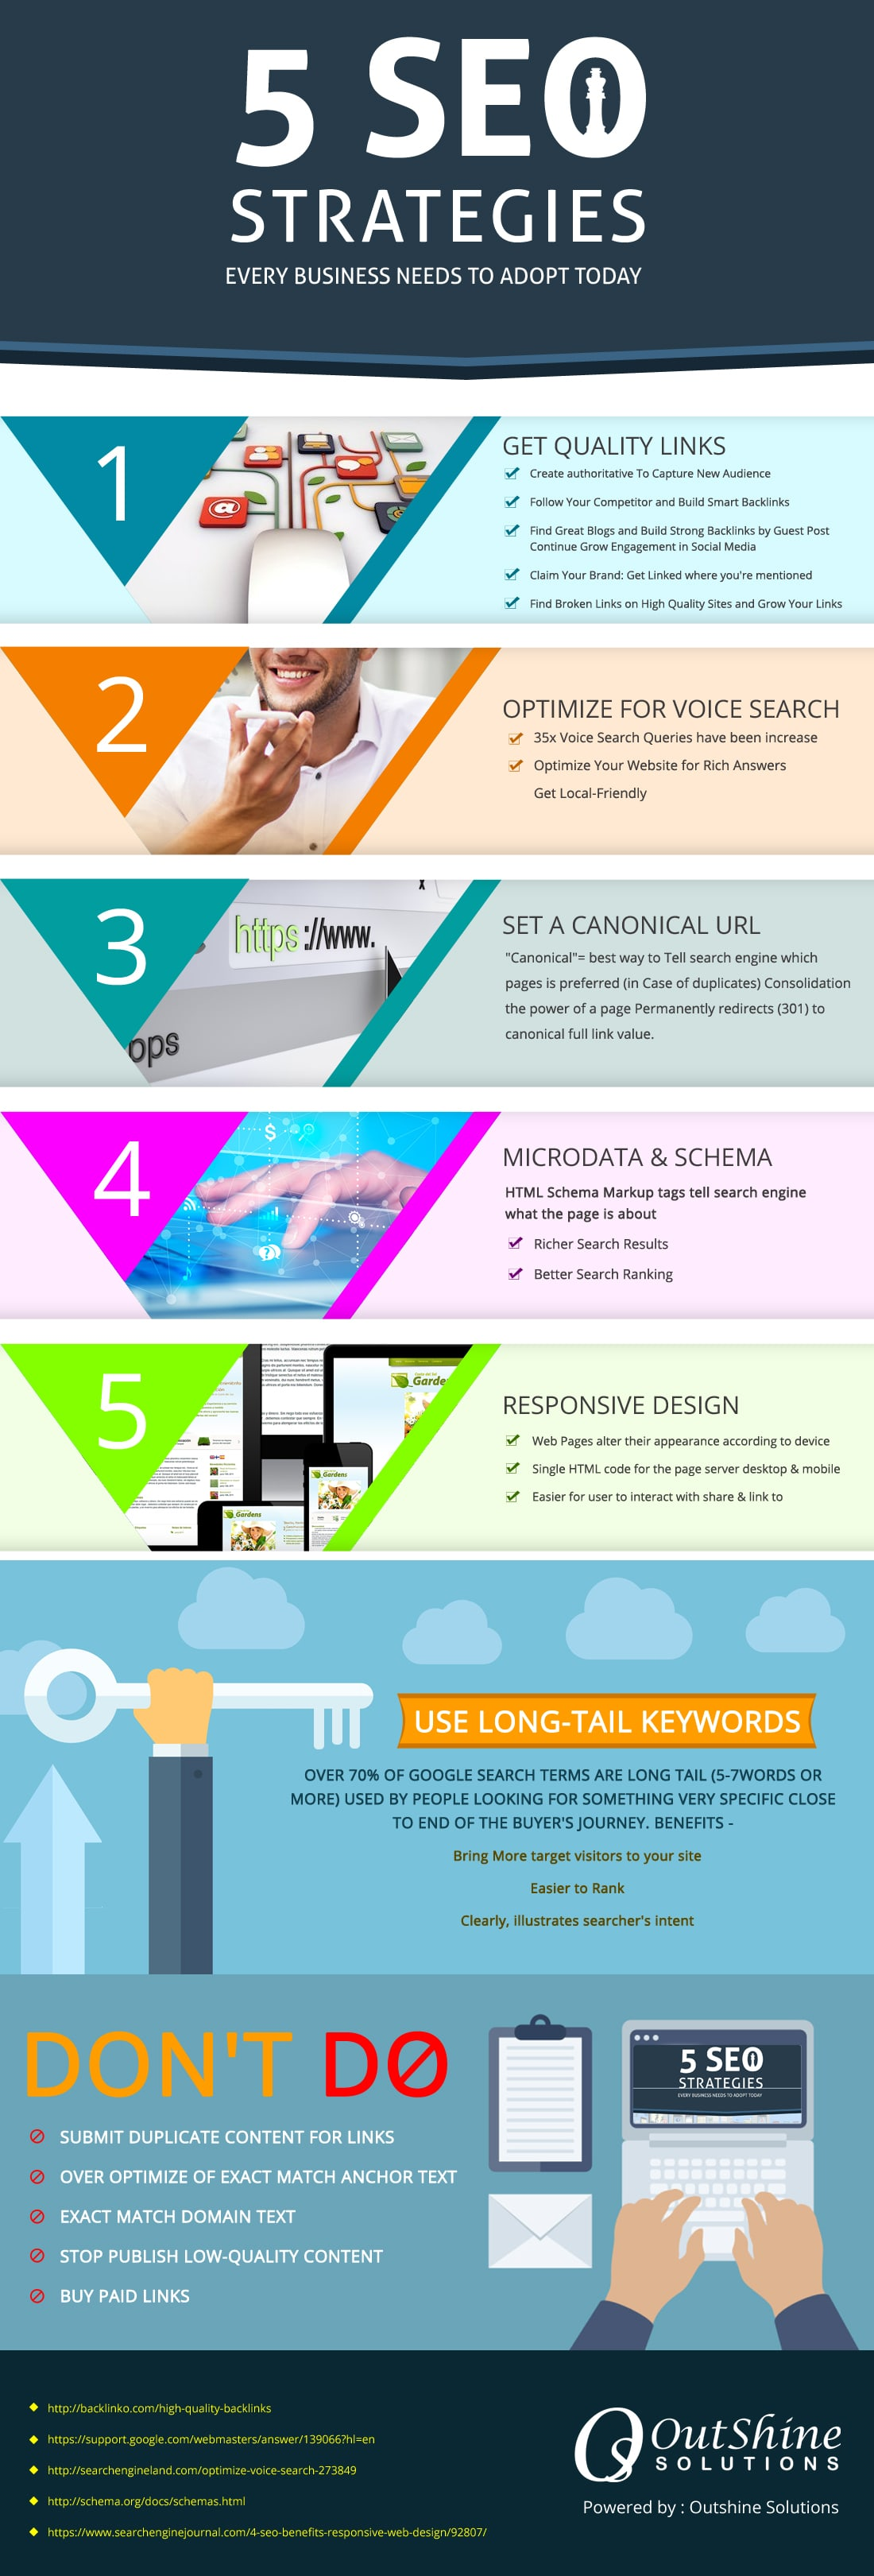 5 SEO Strategies infographic